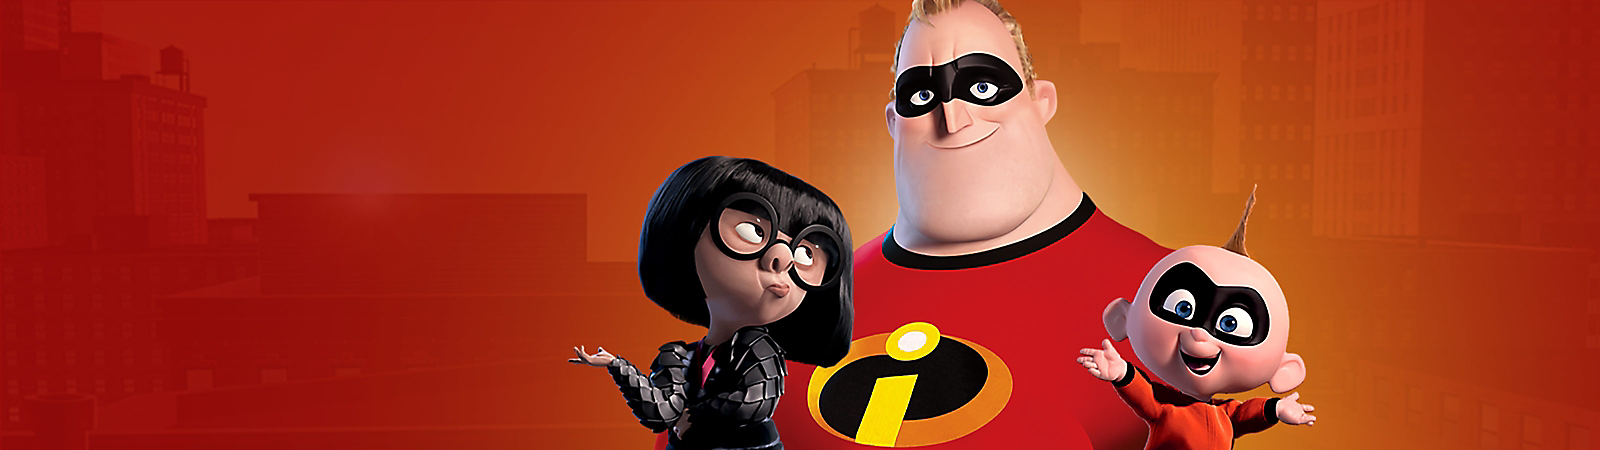 Background image of The Incredibles